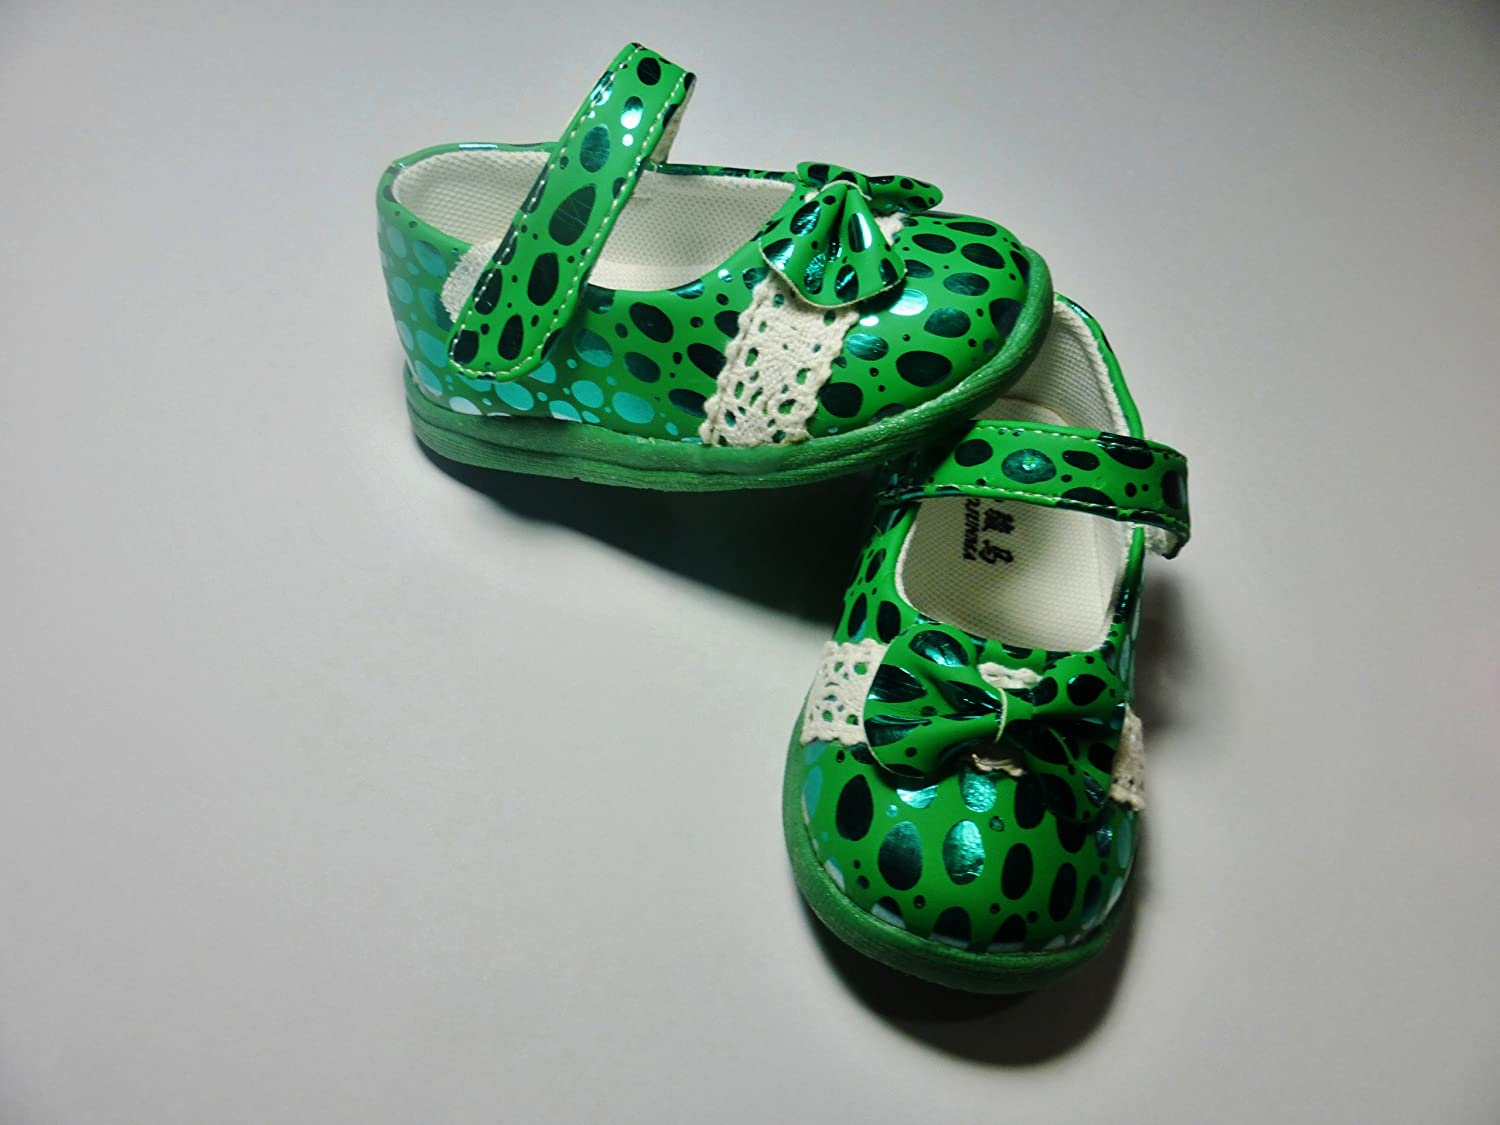 Green Dress Shoes with Sparkling Dots 4.25 Soles